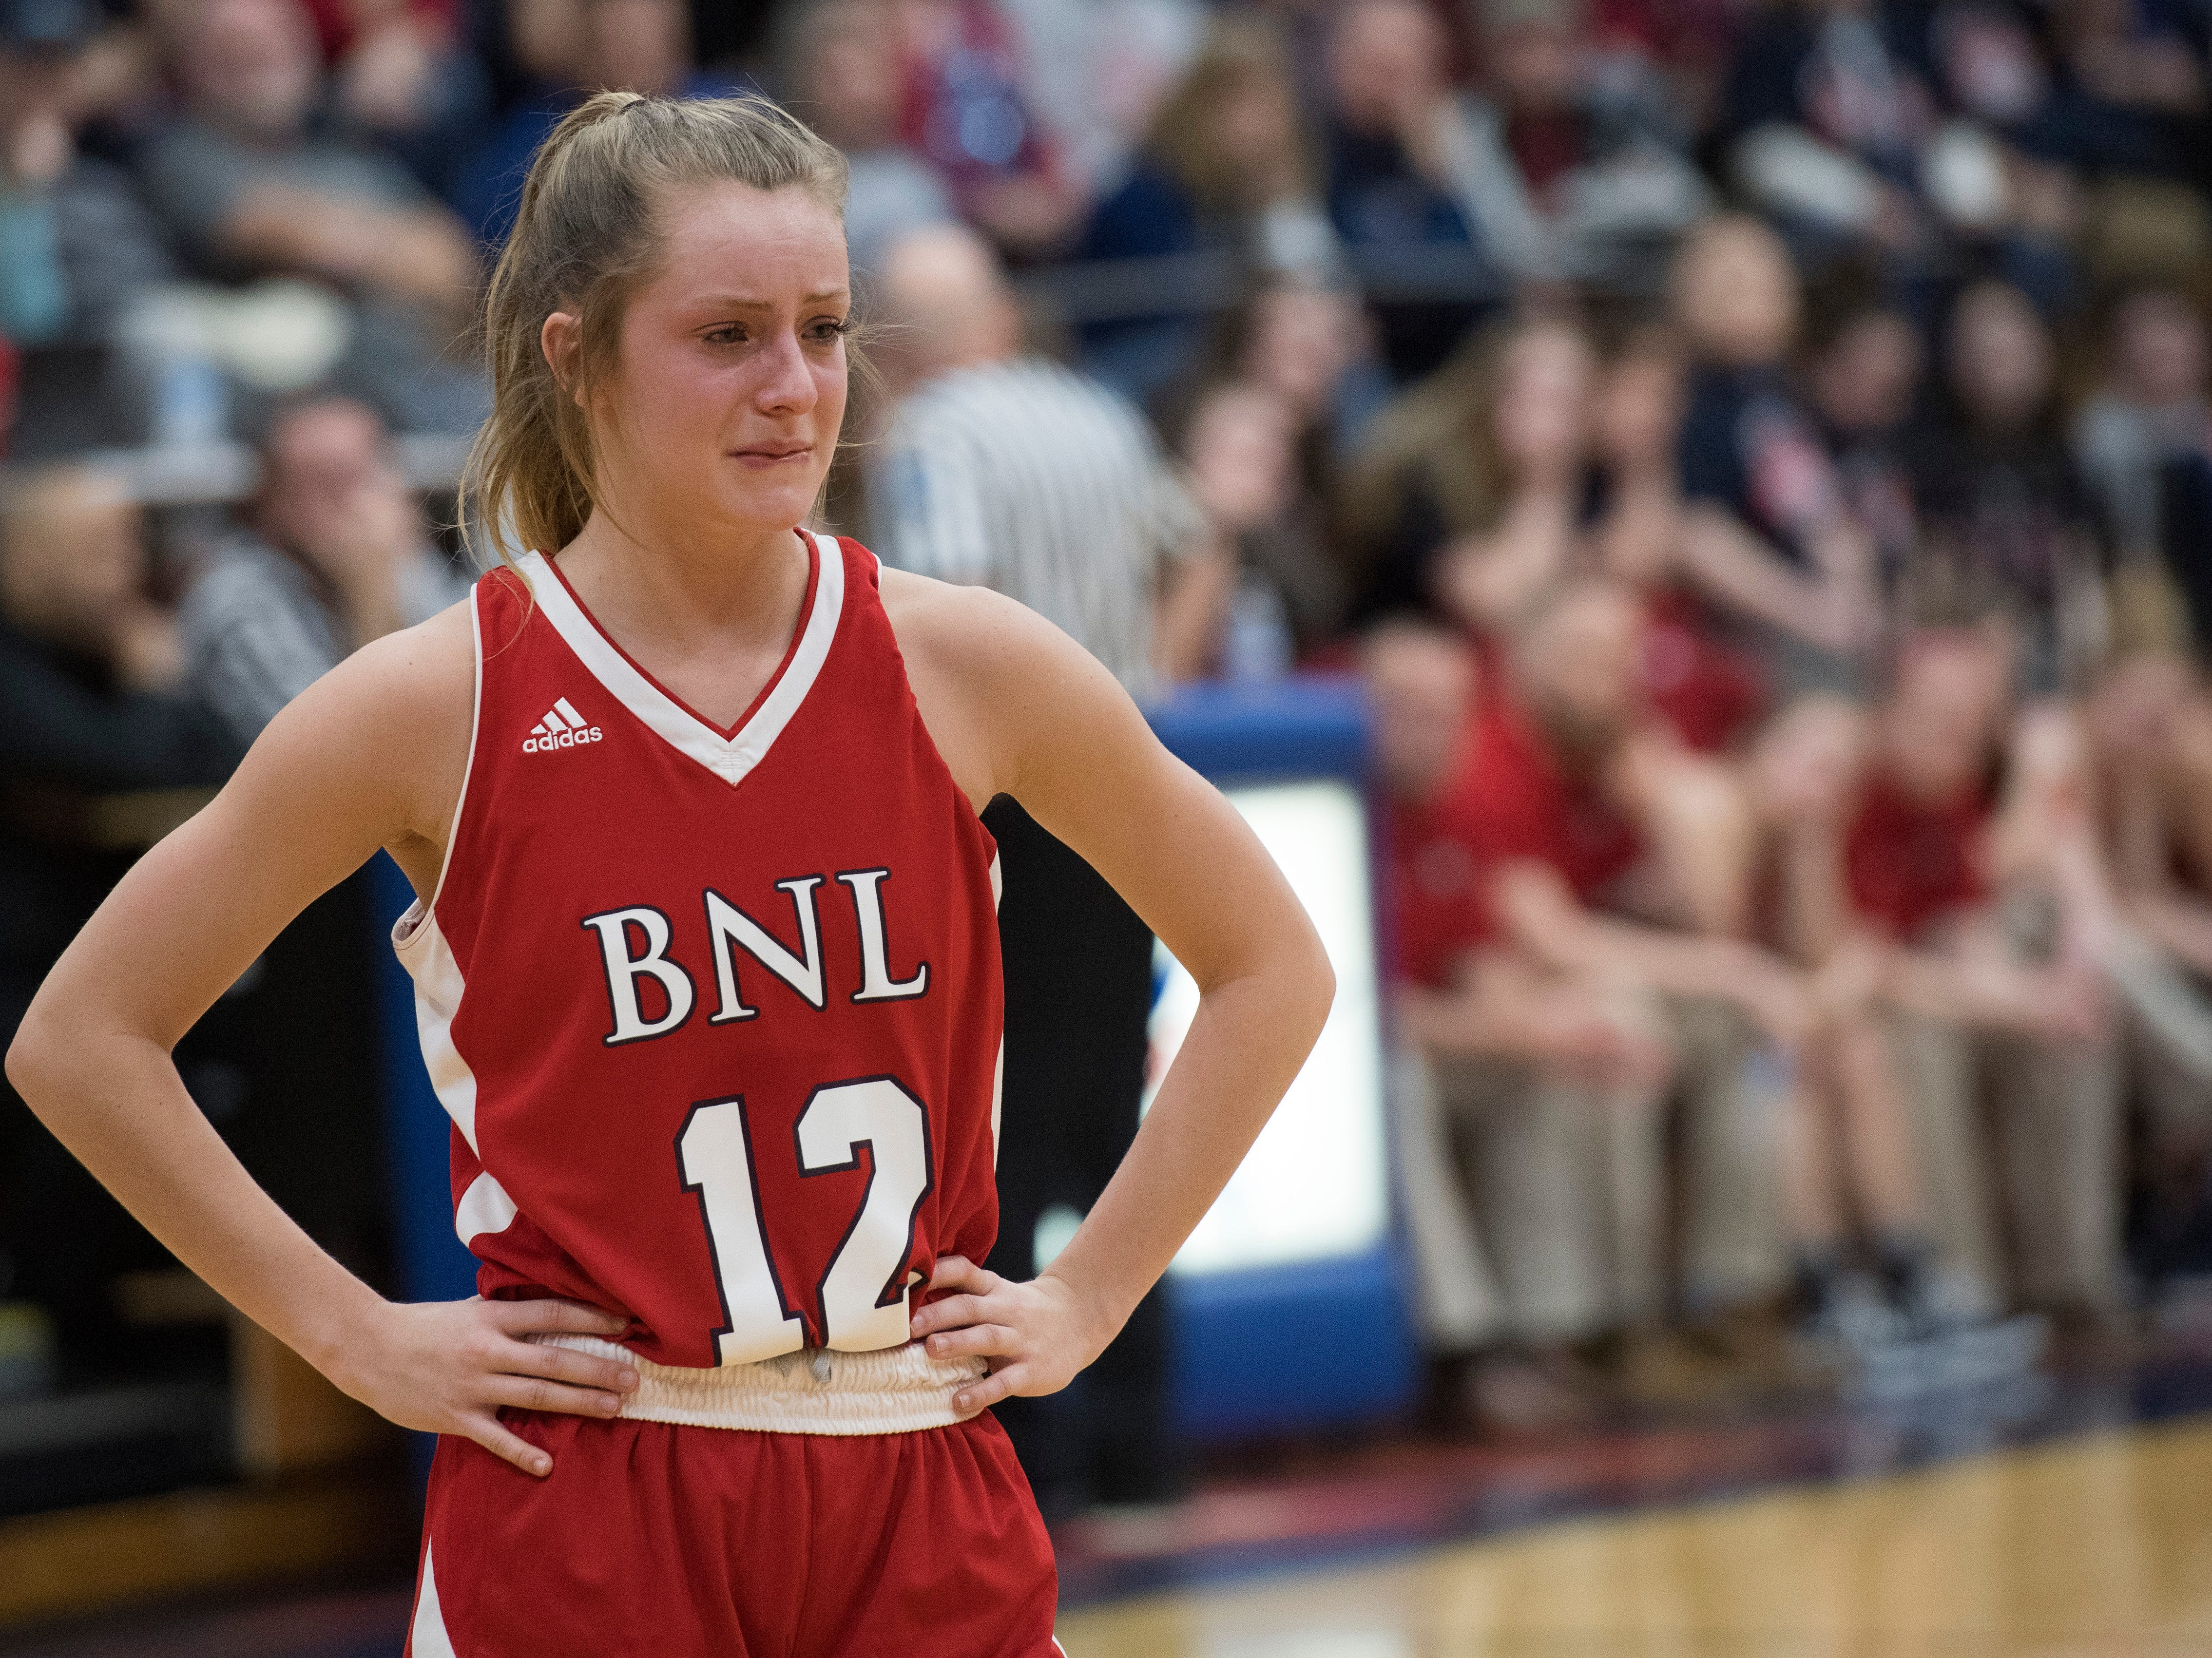 Bedford North Lawrence's Jacy Hughes (12) gets emotional on the court before the end of the IHSAA Girls Basketball Class 4A Regional Championship game against the Castle Knights at the Stars Field House in Bedford, Ind. Saturday, Feb. 9, 2019. Bedford North Lawrence lost, 54-48.